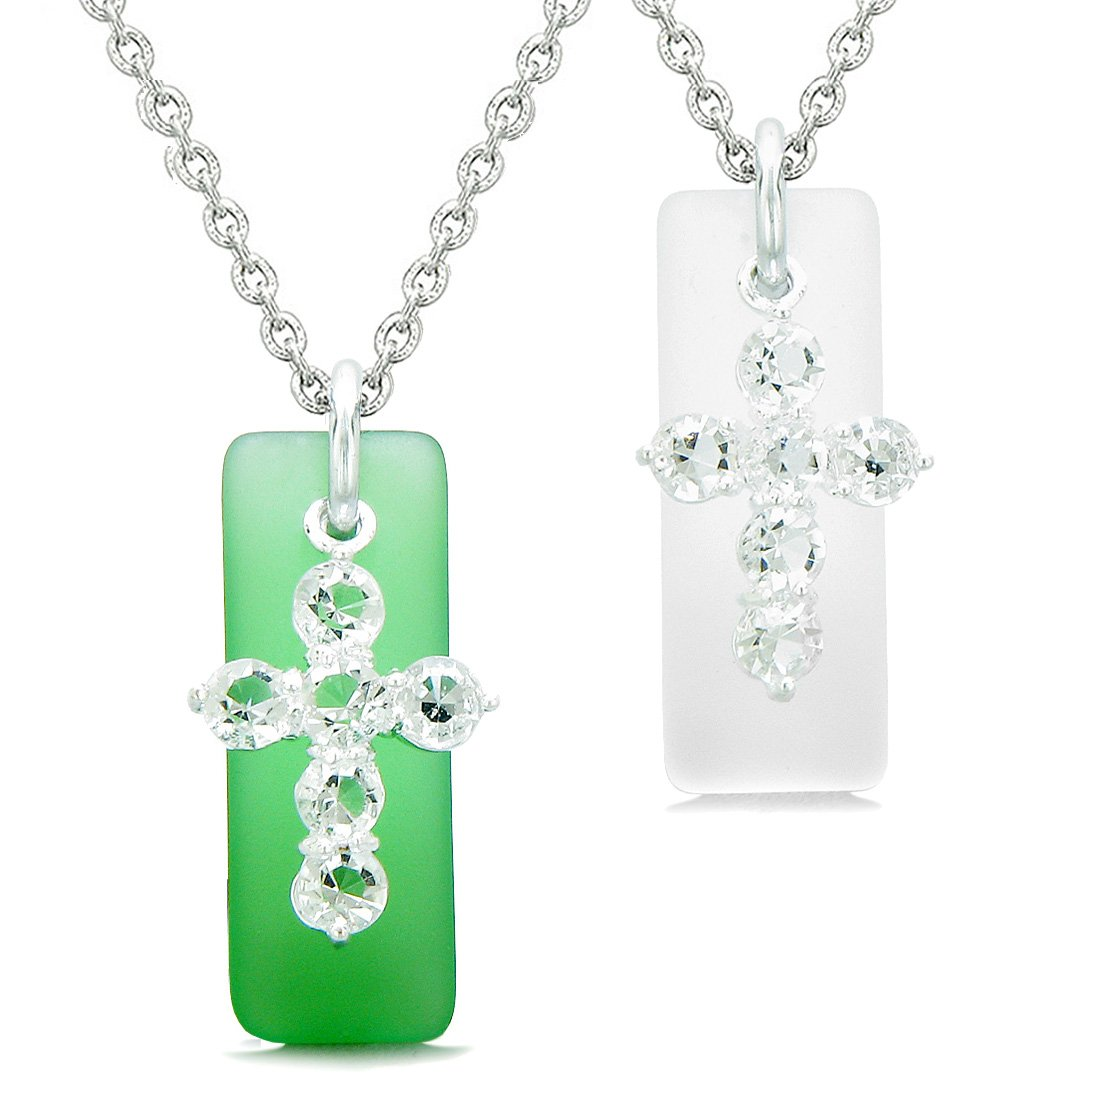 Sea Glass Ocean Green and Mist White Tags Crystal Cross Love Couples BFF Set Protection Amulet Necklaces